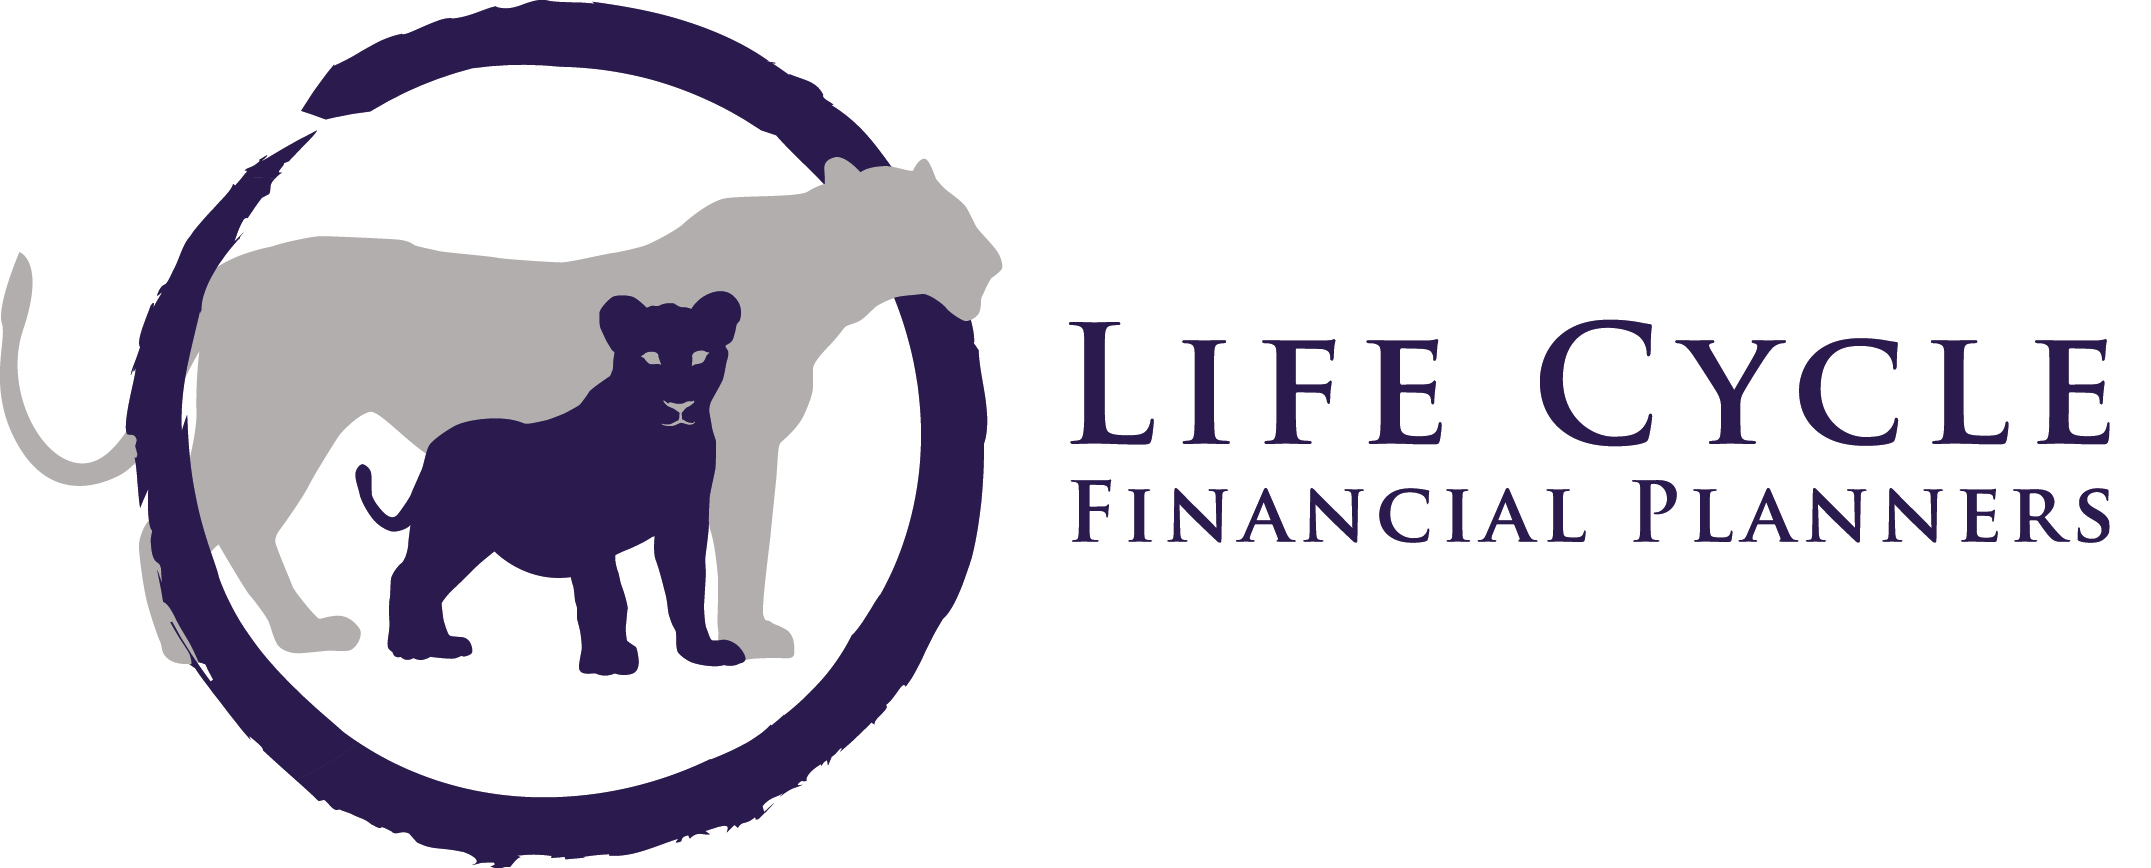 Life Cycle Financial Planners, LLC